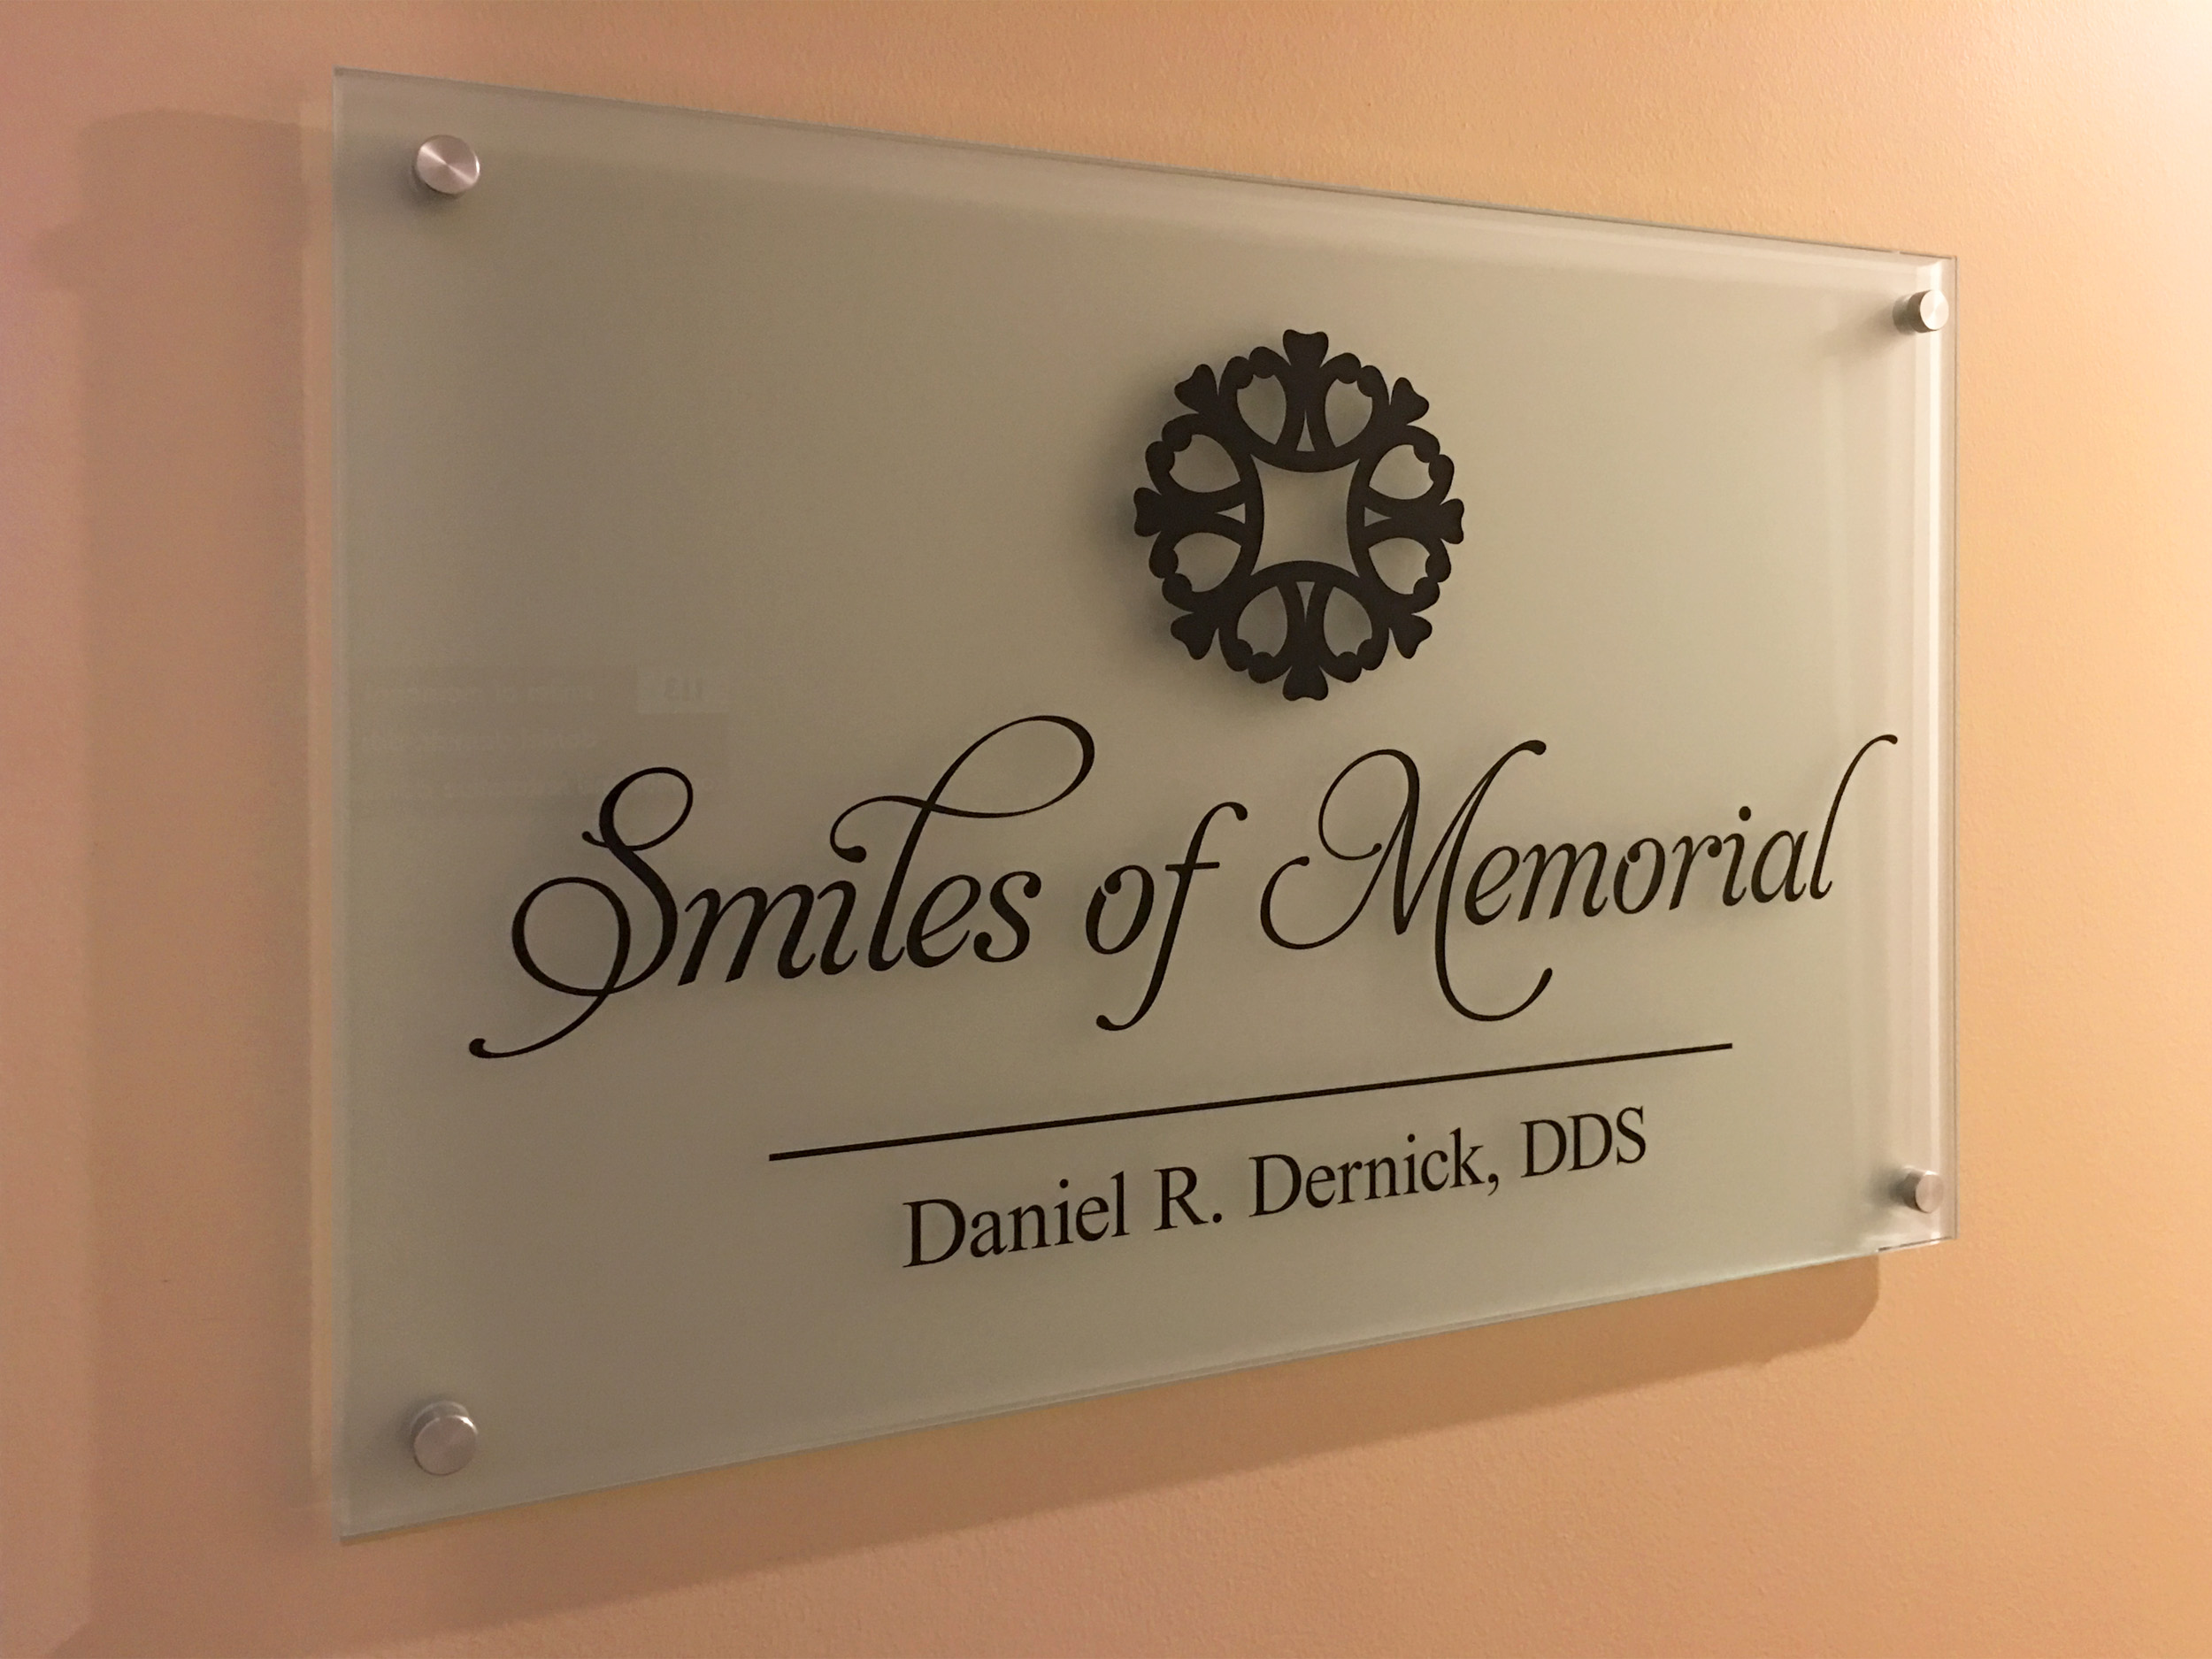 SmilesofMemorial_Frosted_Glass_Sign_web.jpg